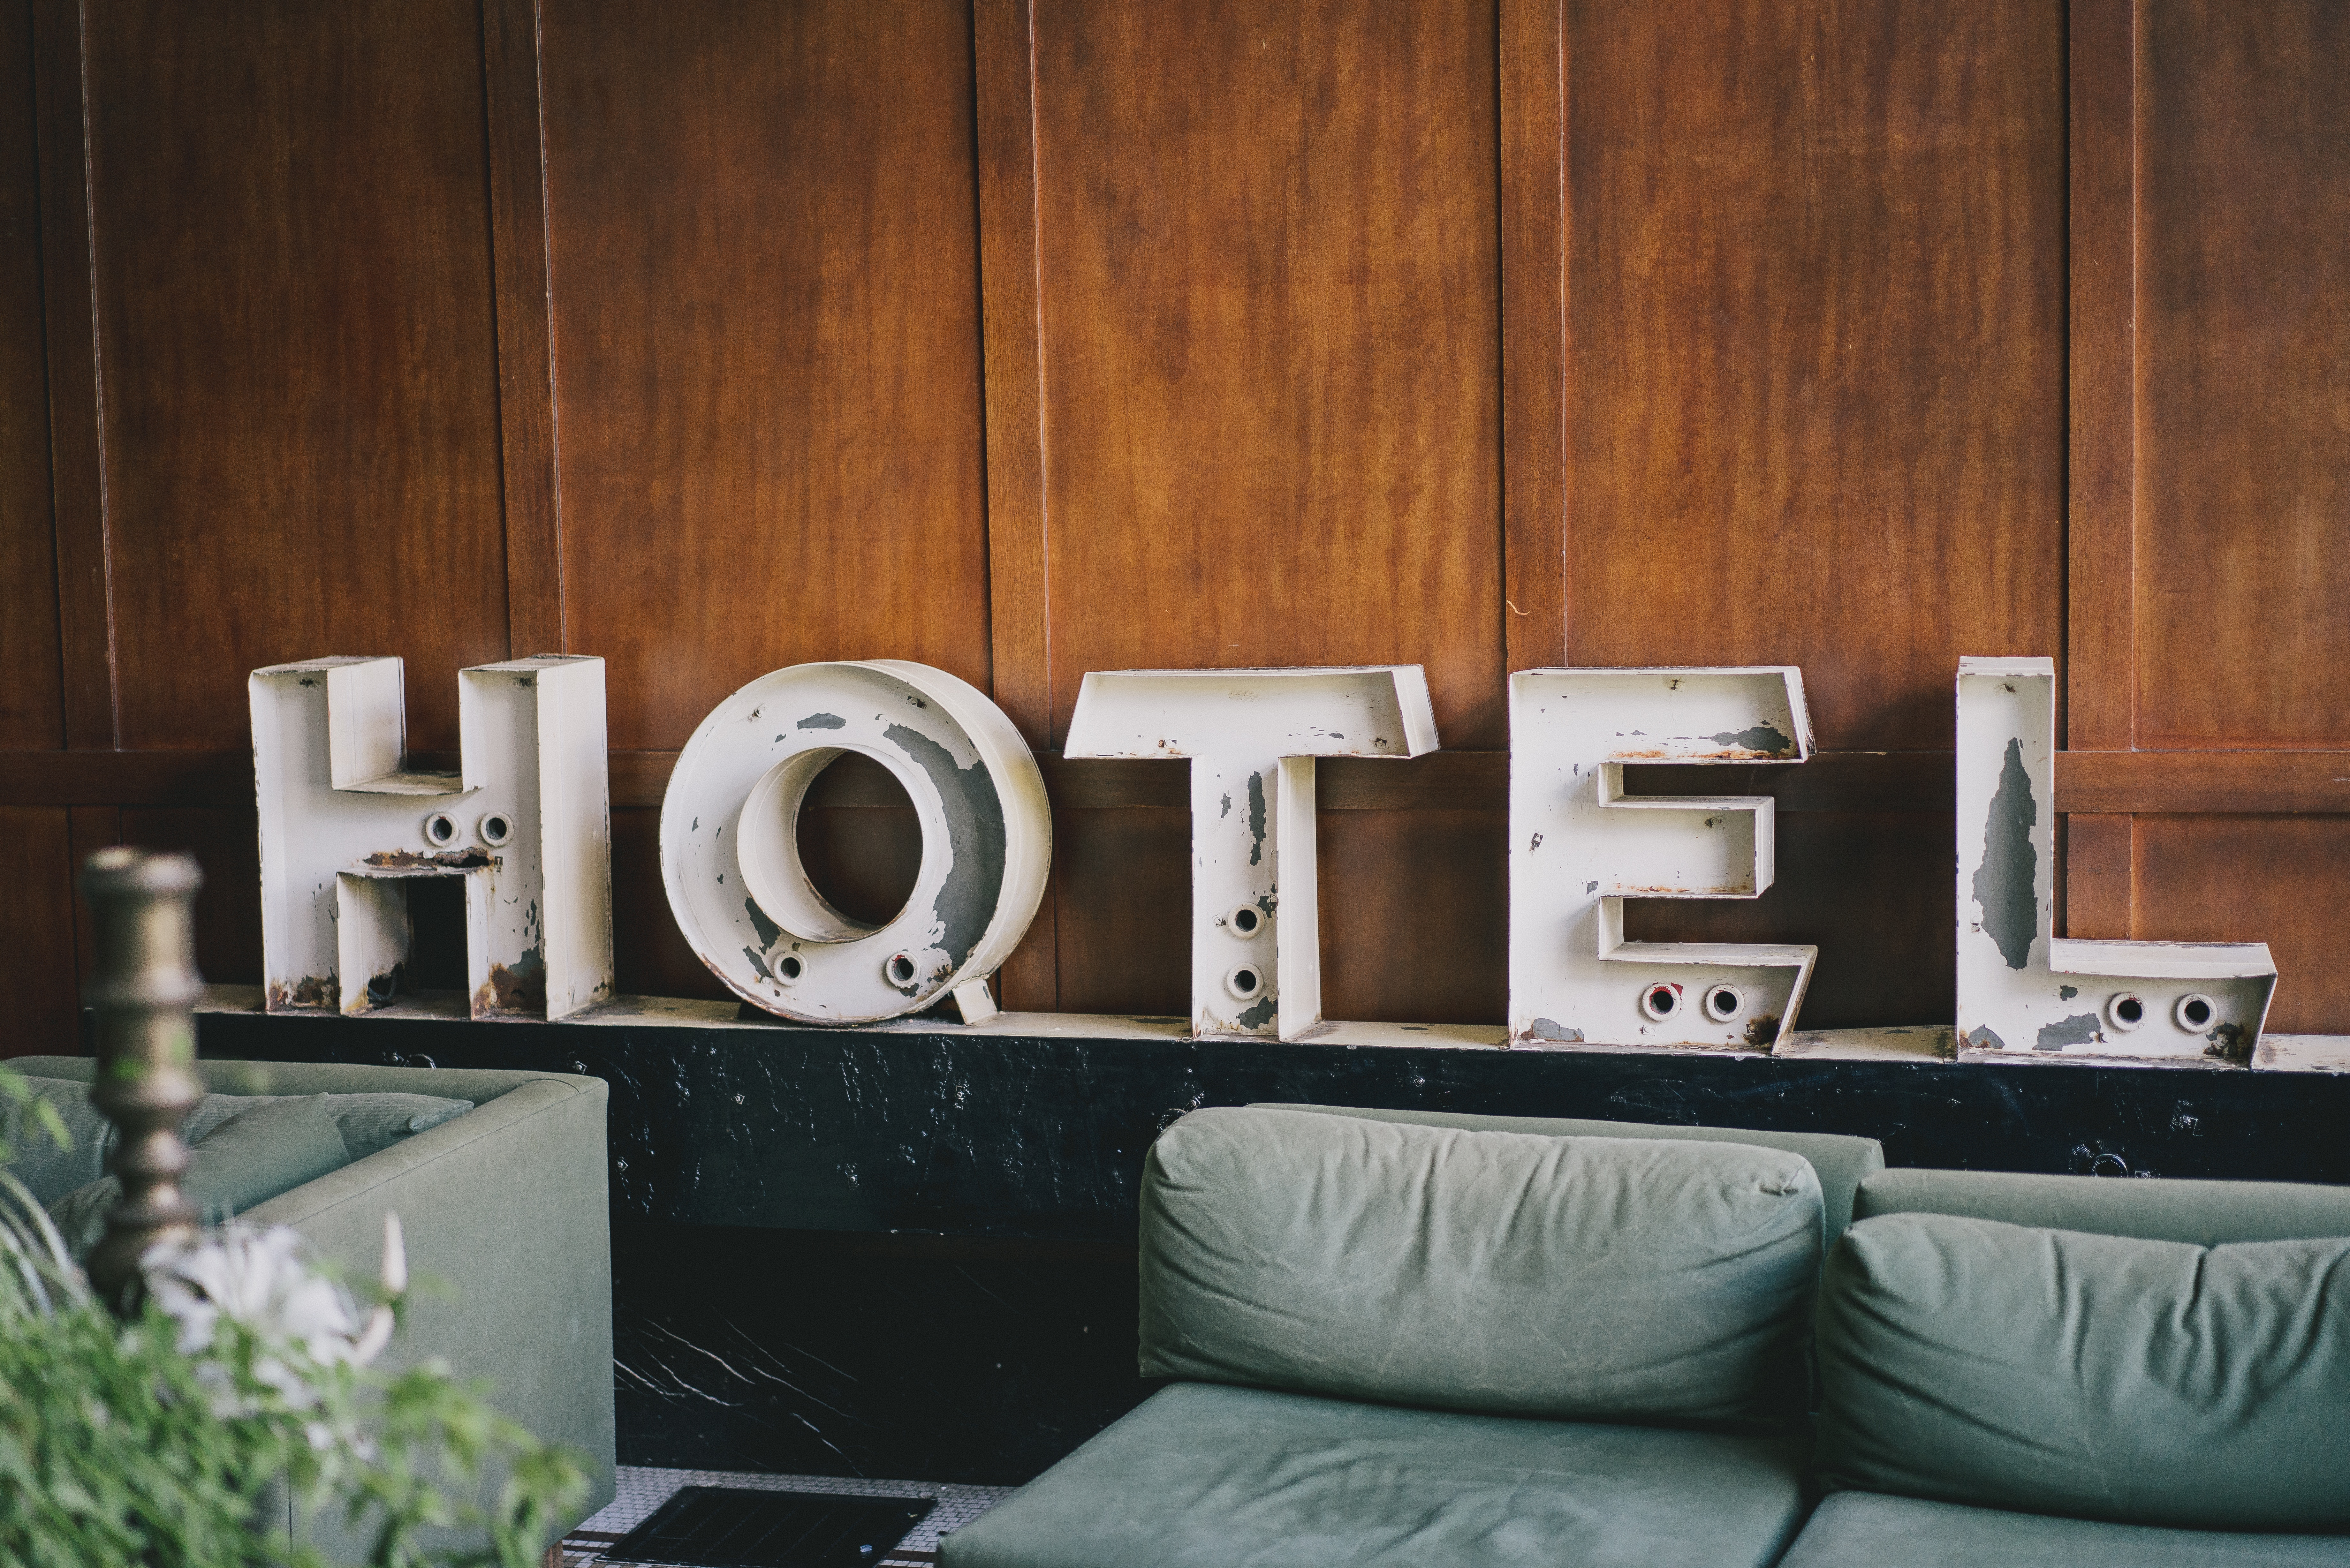 Dalata buys Shoreditch hotel site for £32m